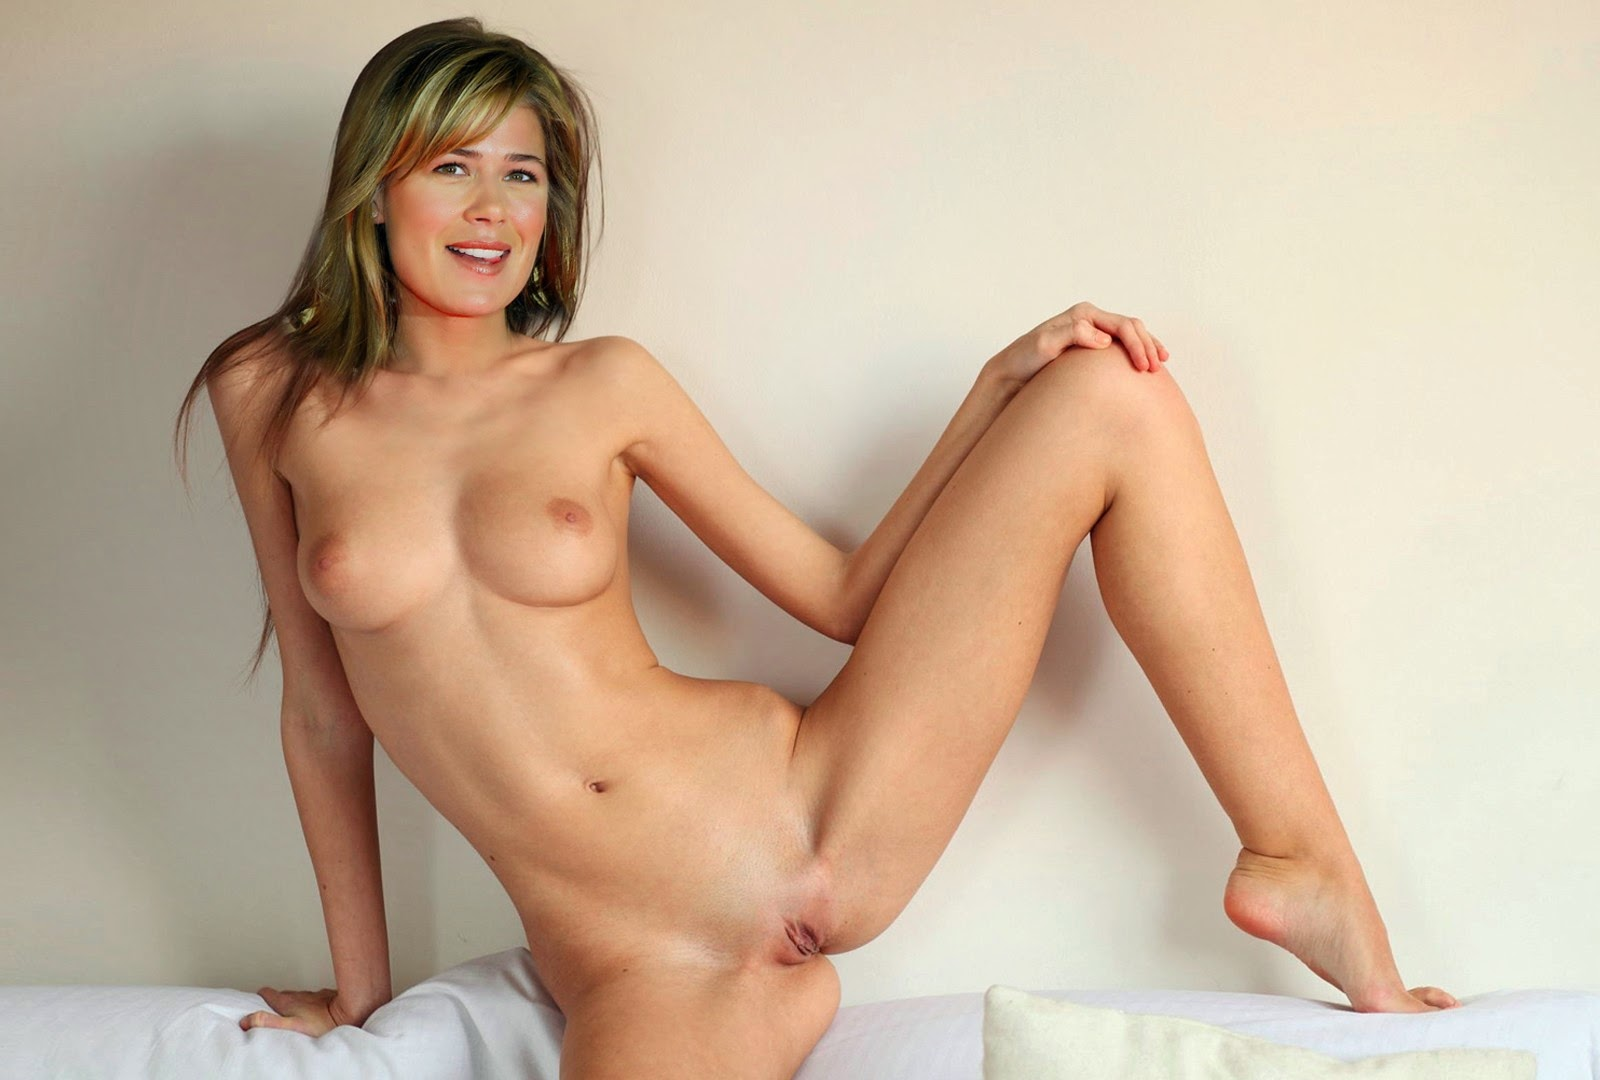 Pics nudist ... she's